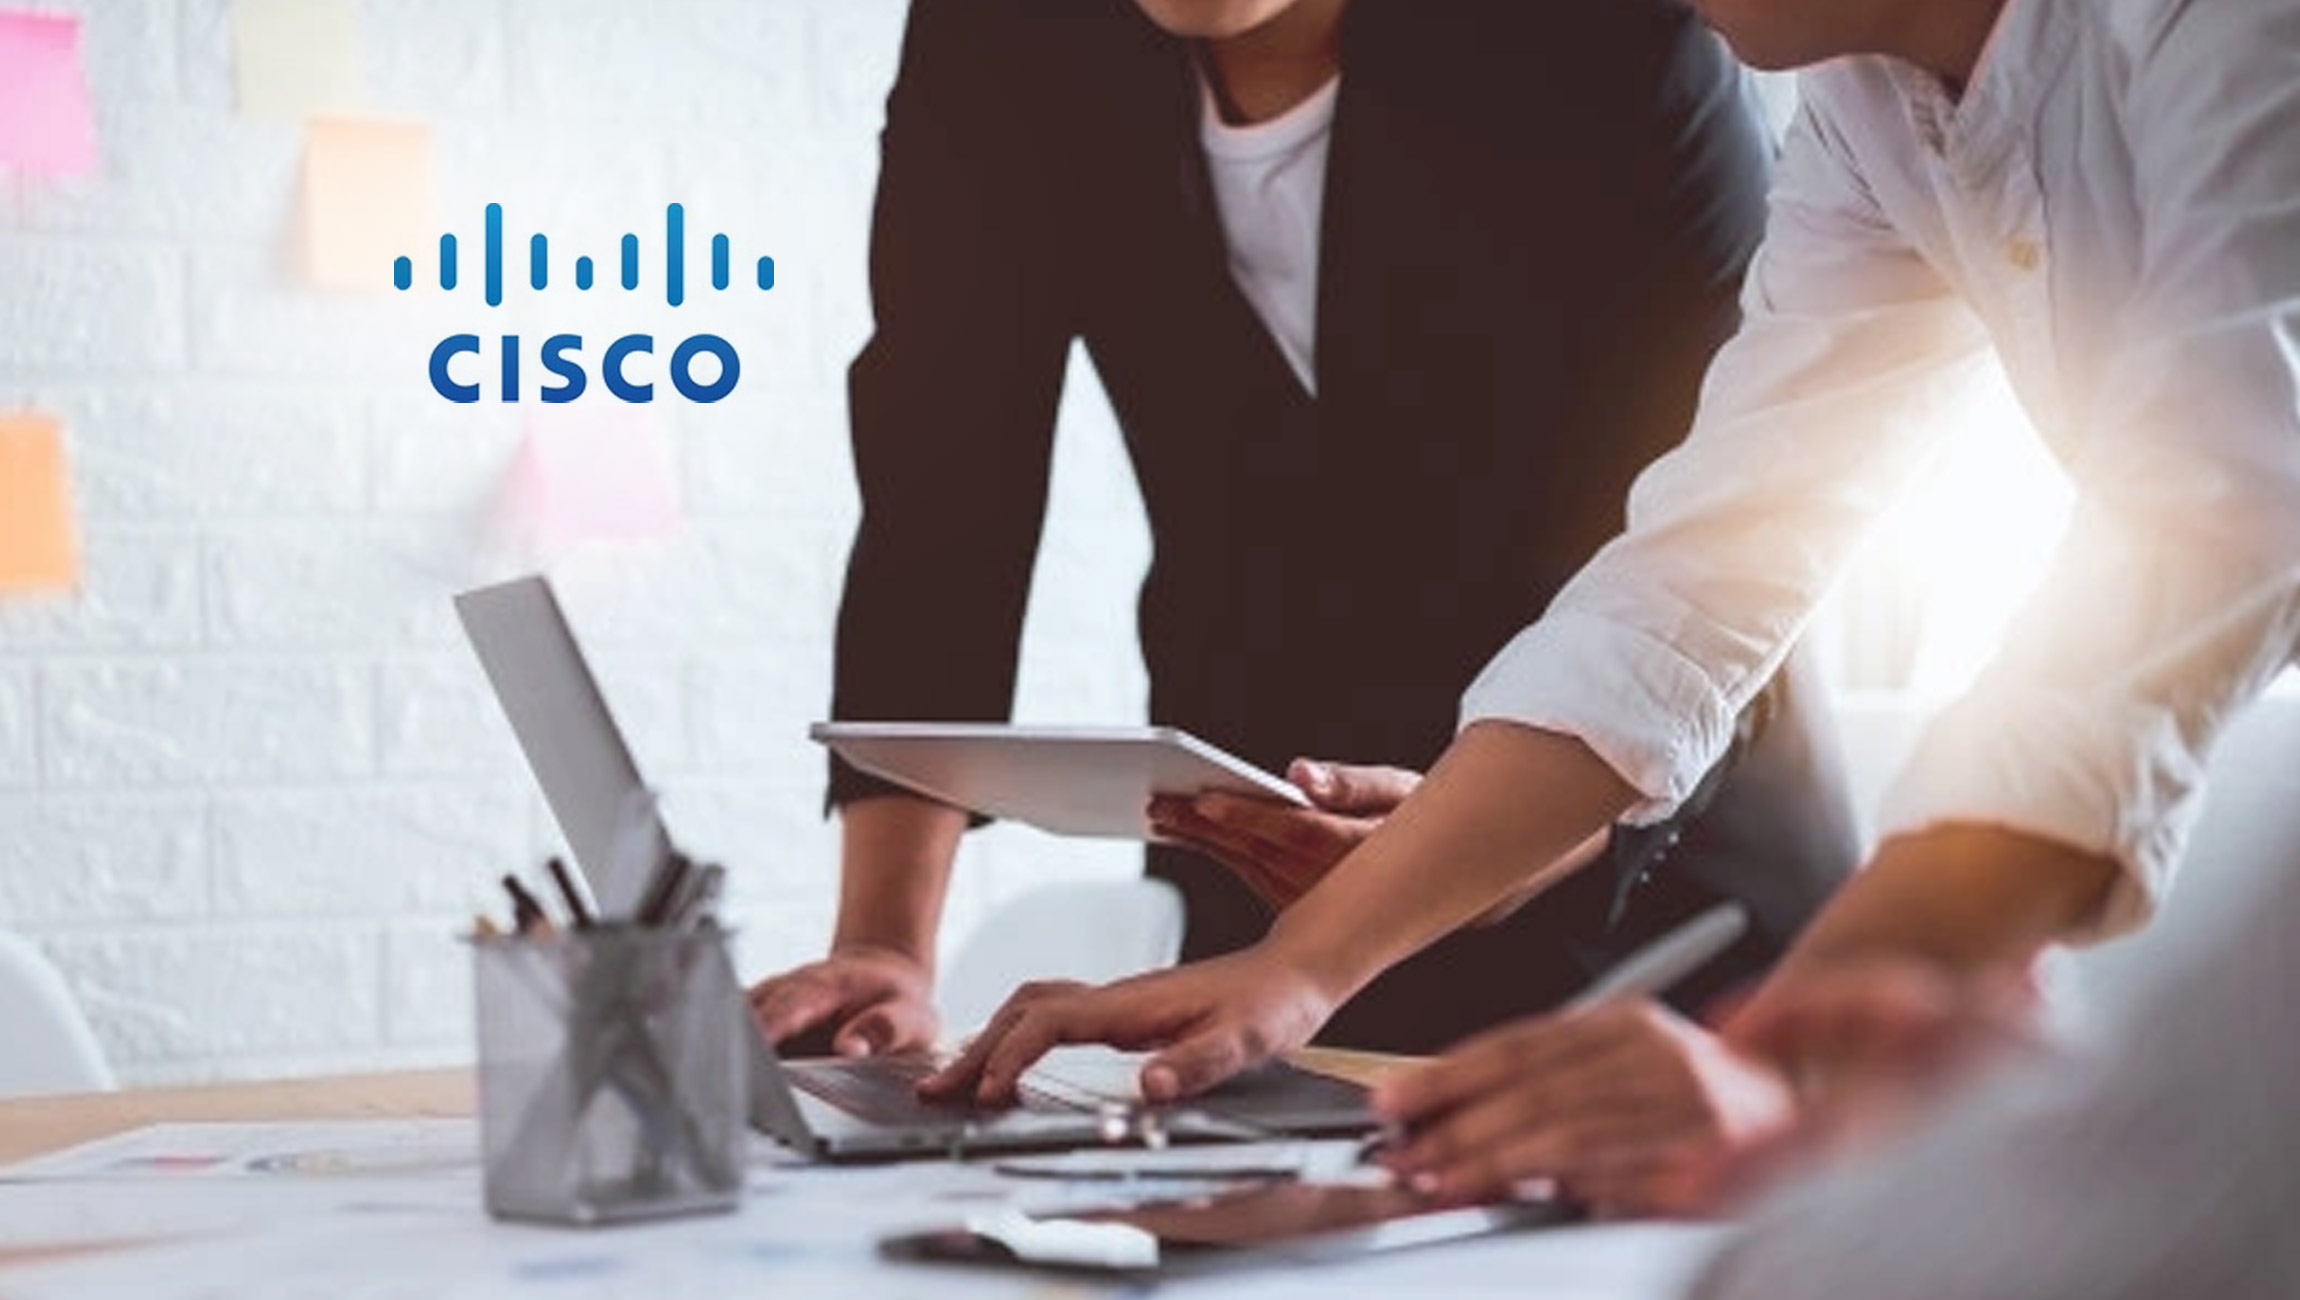 """Cisco CEO Addresses World's Largest Cybersecurity Conference: """"Security Must Be Simple, Intelligent and Everywhere"""" 1"""